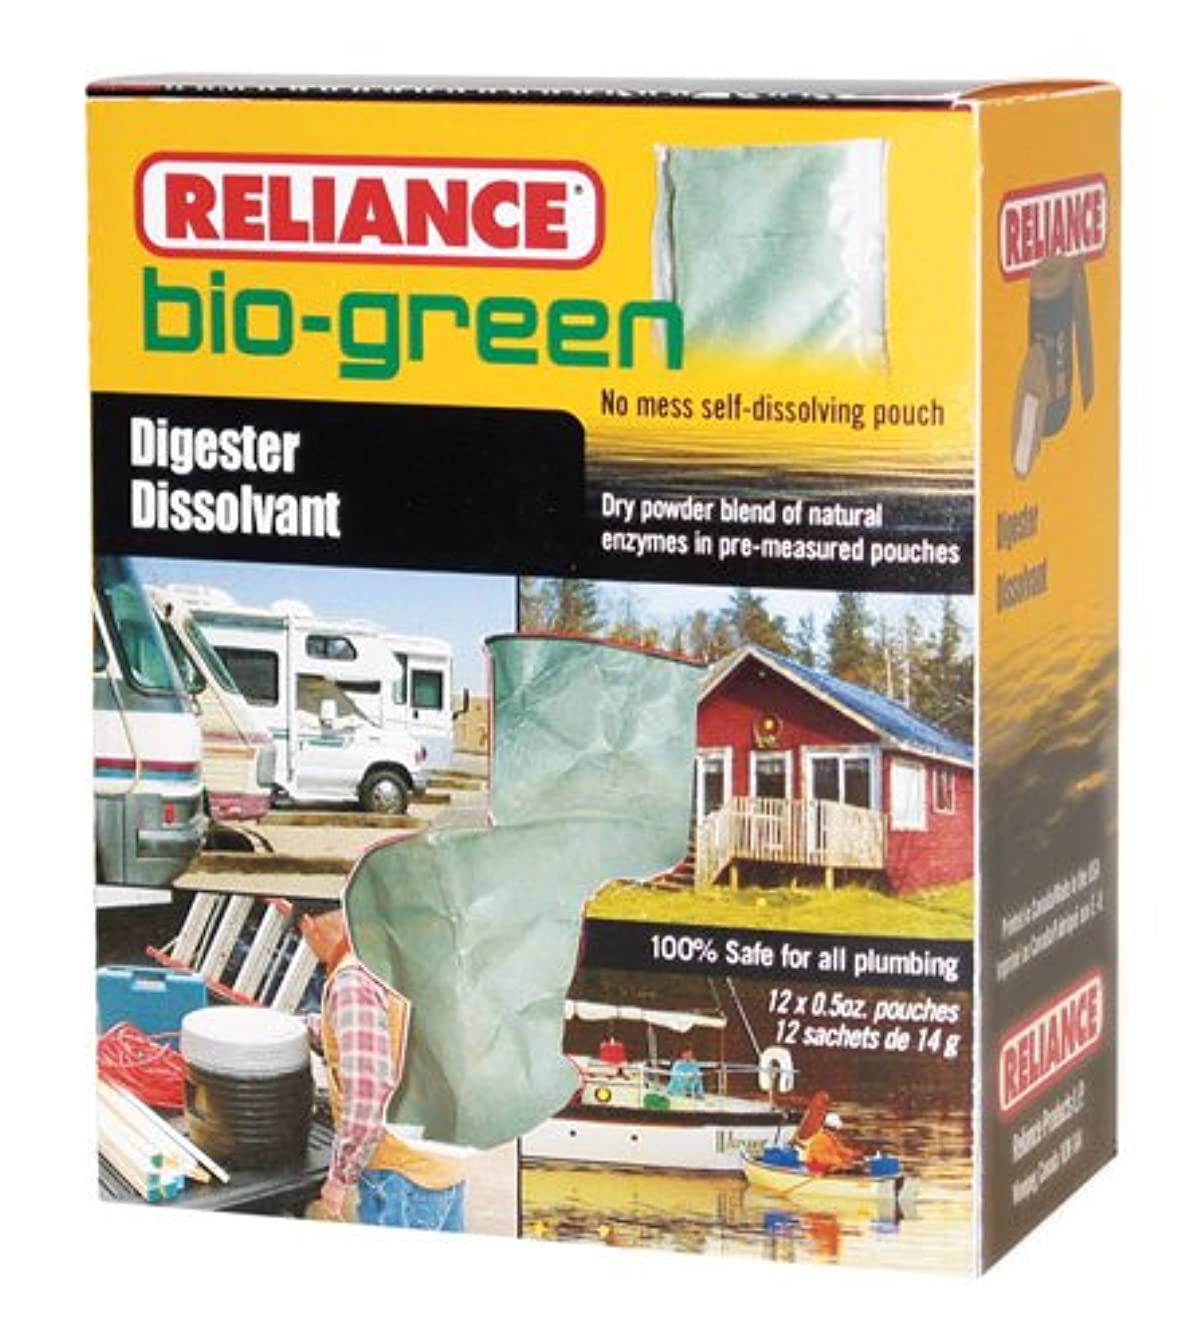 ショップお互いゴミ箱を空にするReliance Products Bio-Green Waste Digester by Reliance Products